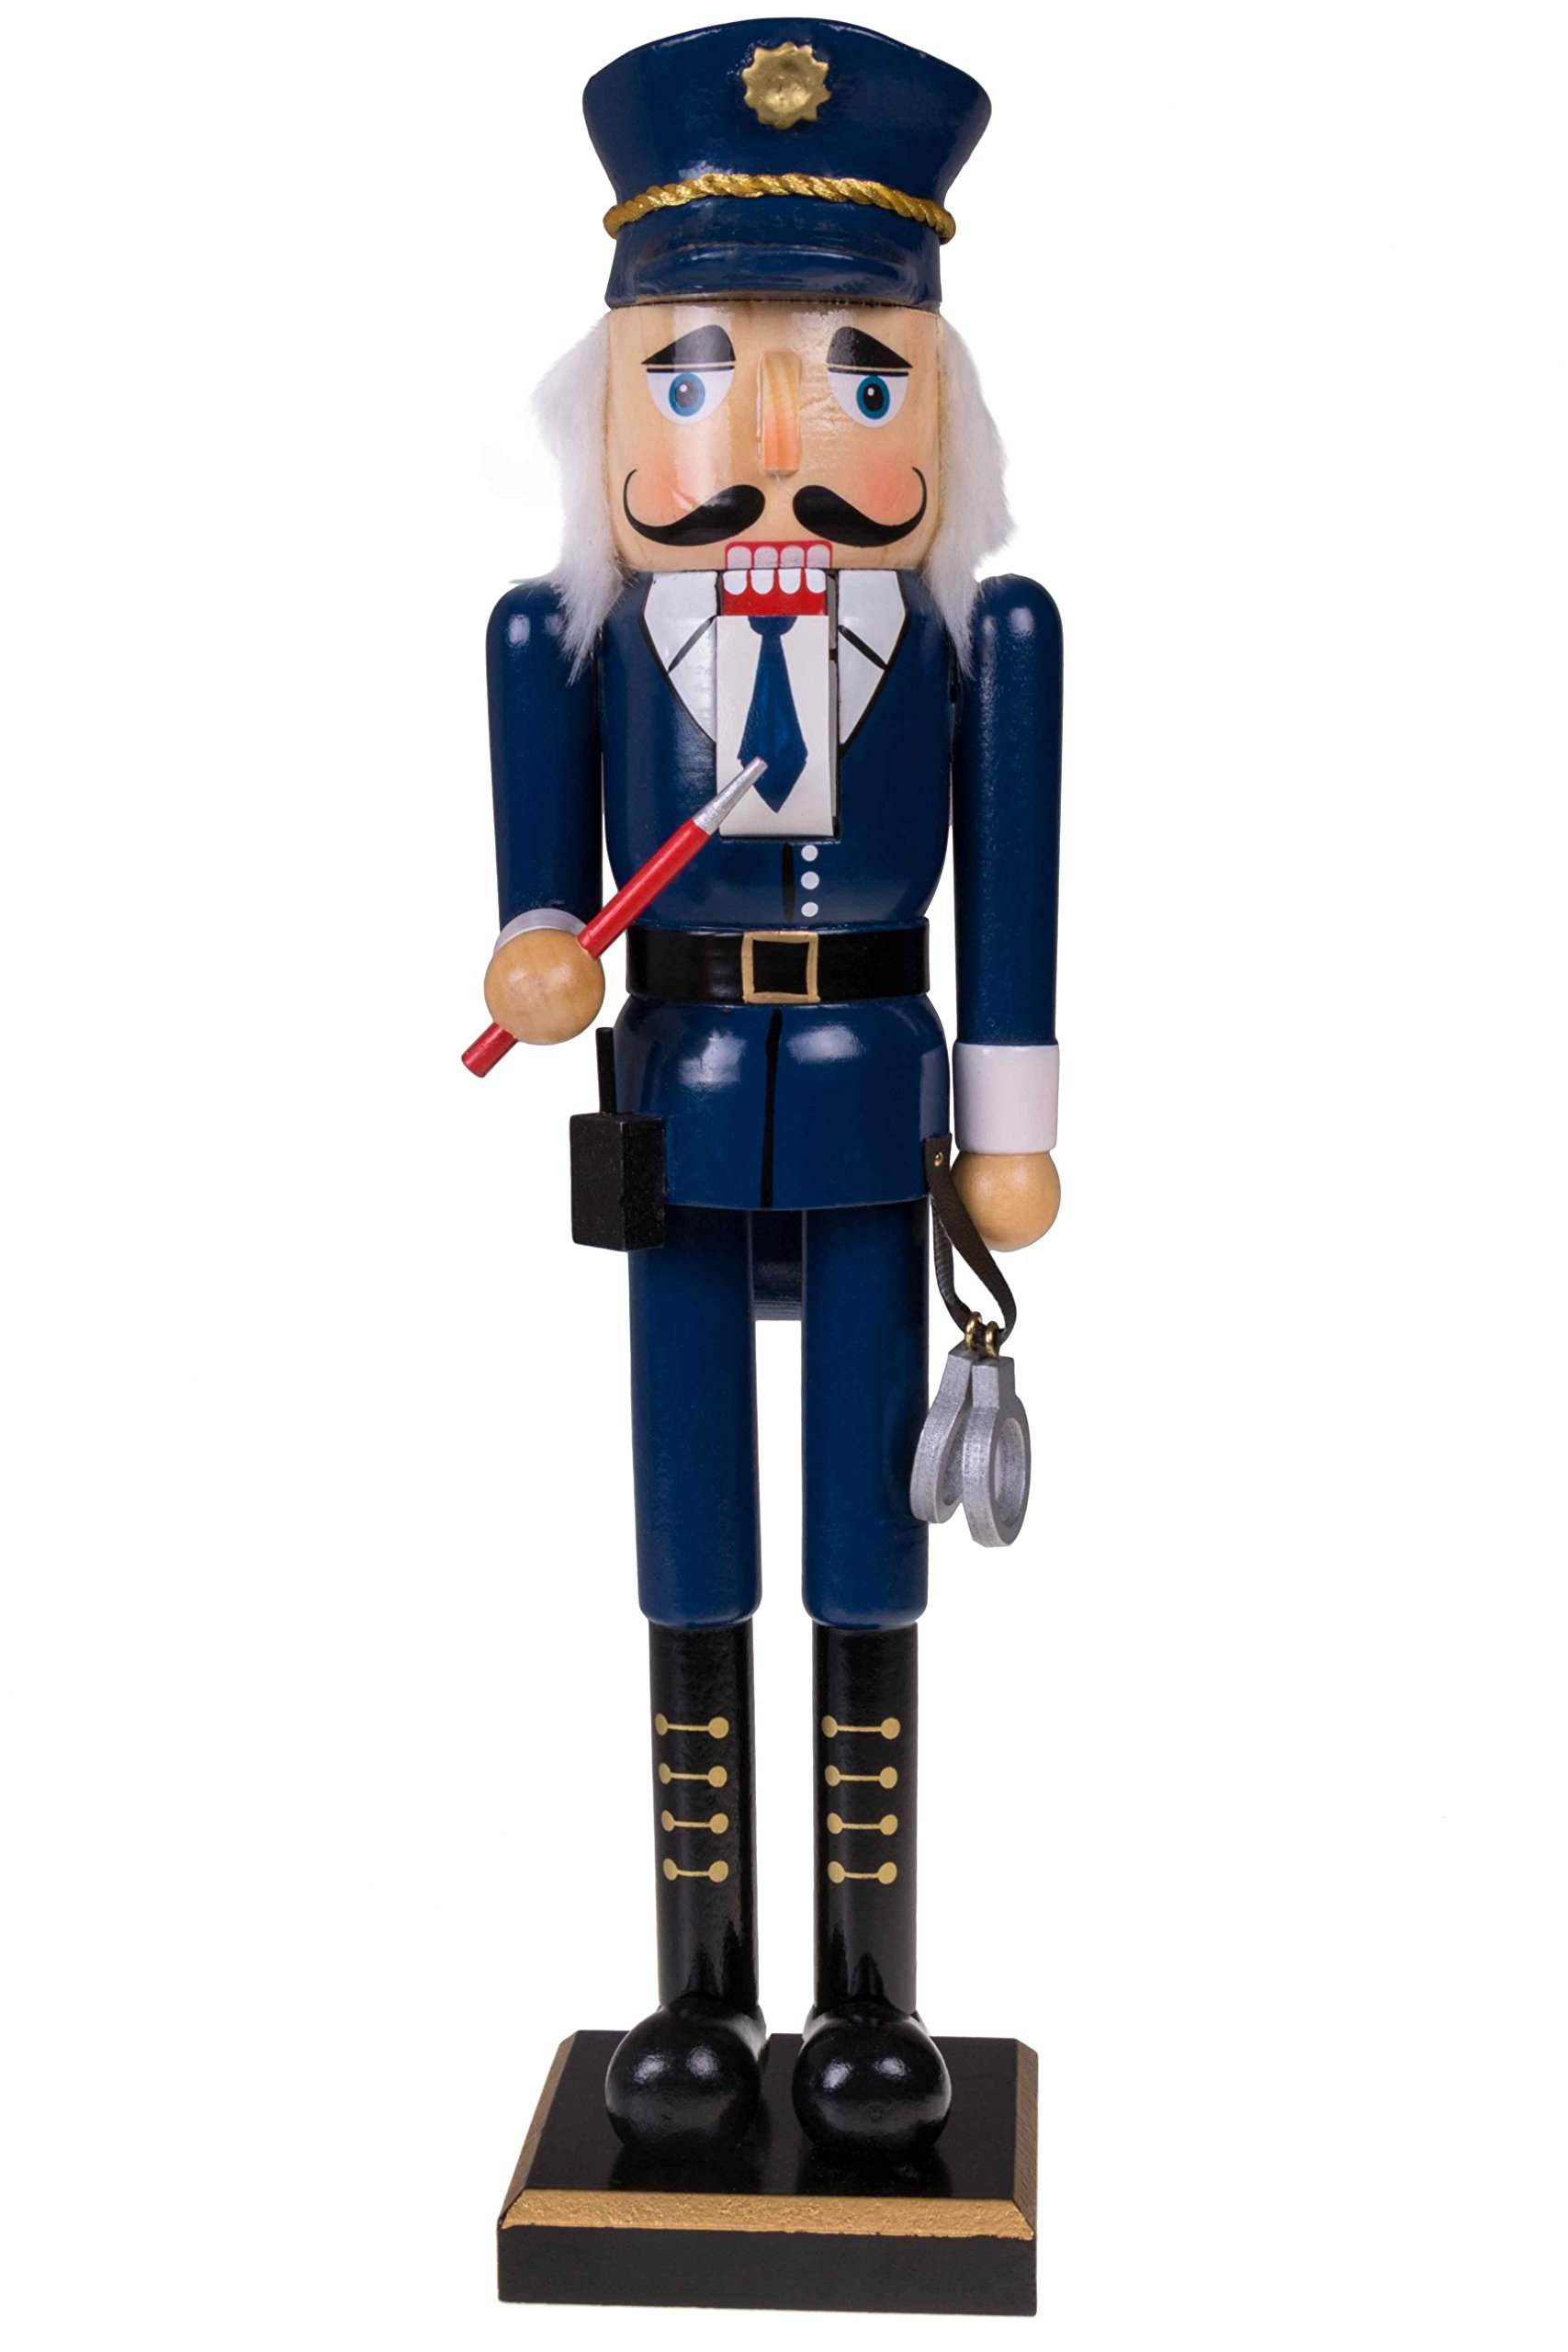 Traditional Police Officer Nutcracker | Traditional Uniform, Handcuffs and Baton | Perfect for Any Collection| Festive Christmas Decor | Perfect for Shelves and Tables | 100% Wood | 15'' Tall